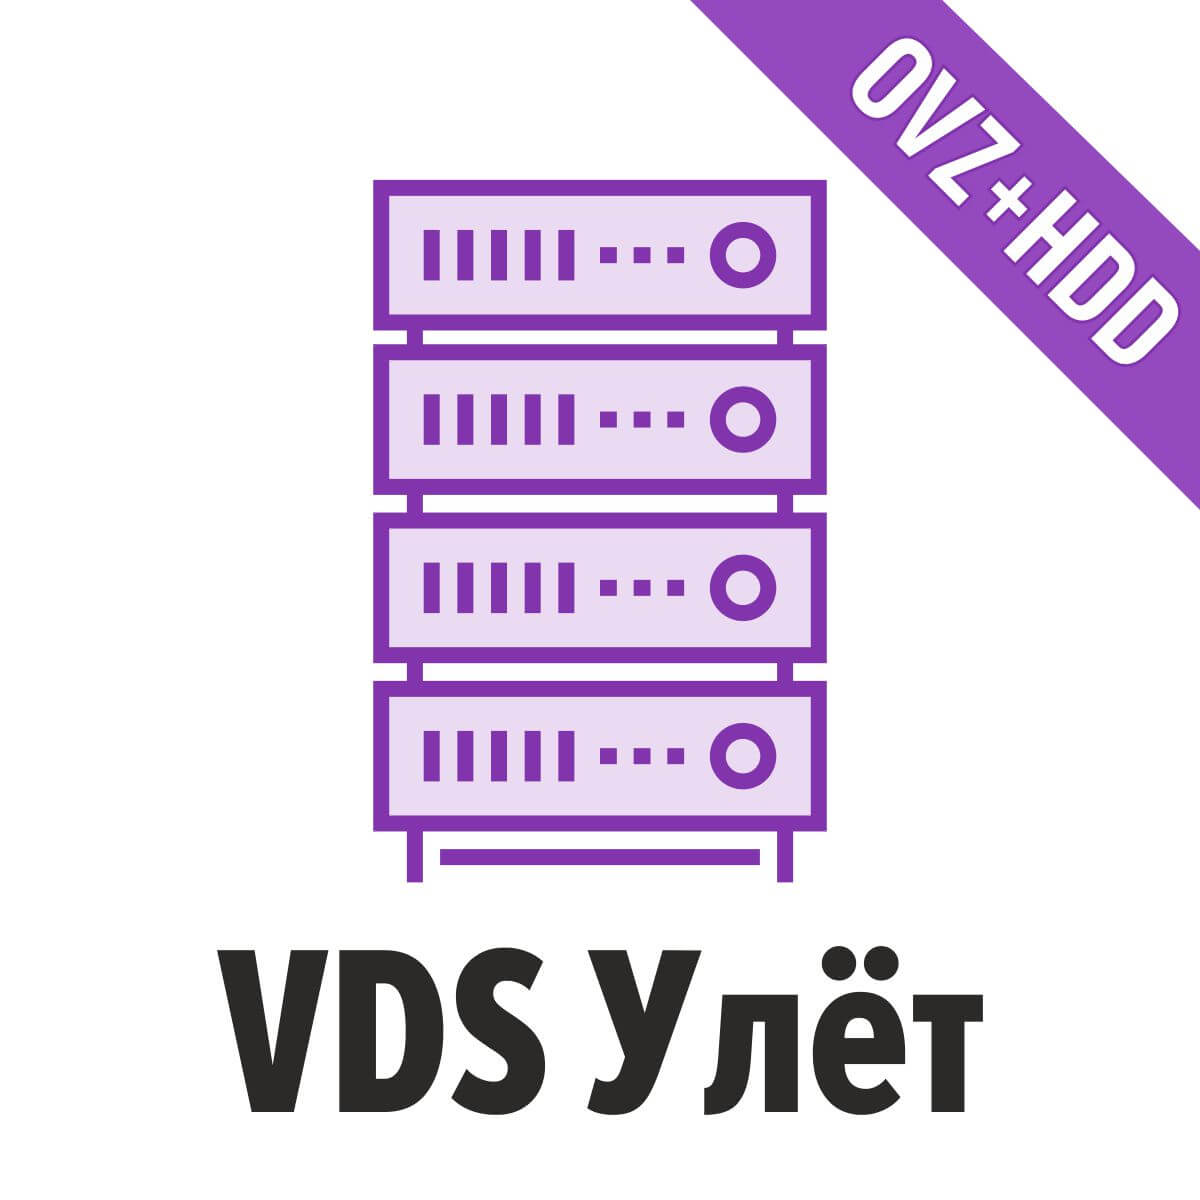 VDS Улёт (OpenVZ, HDD+SSD, 6 Core, 6Gb RAM, 120Gb HDD)